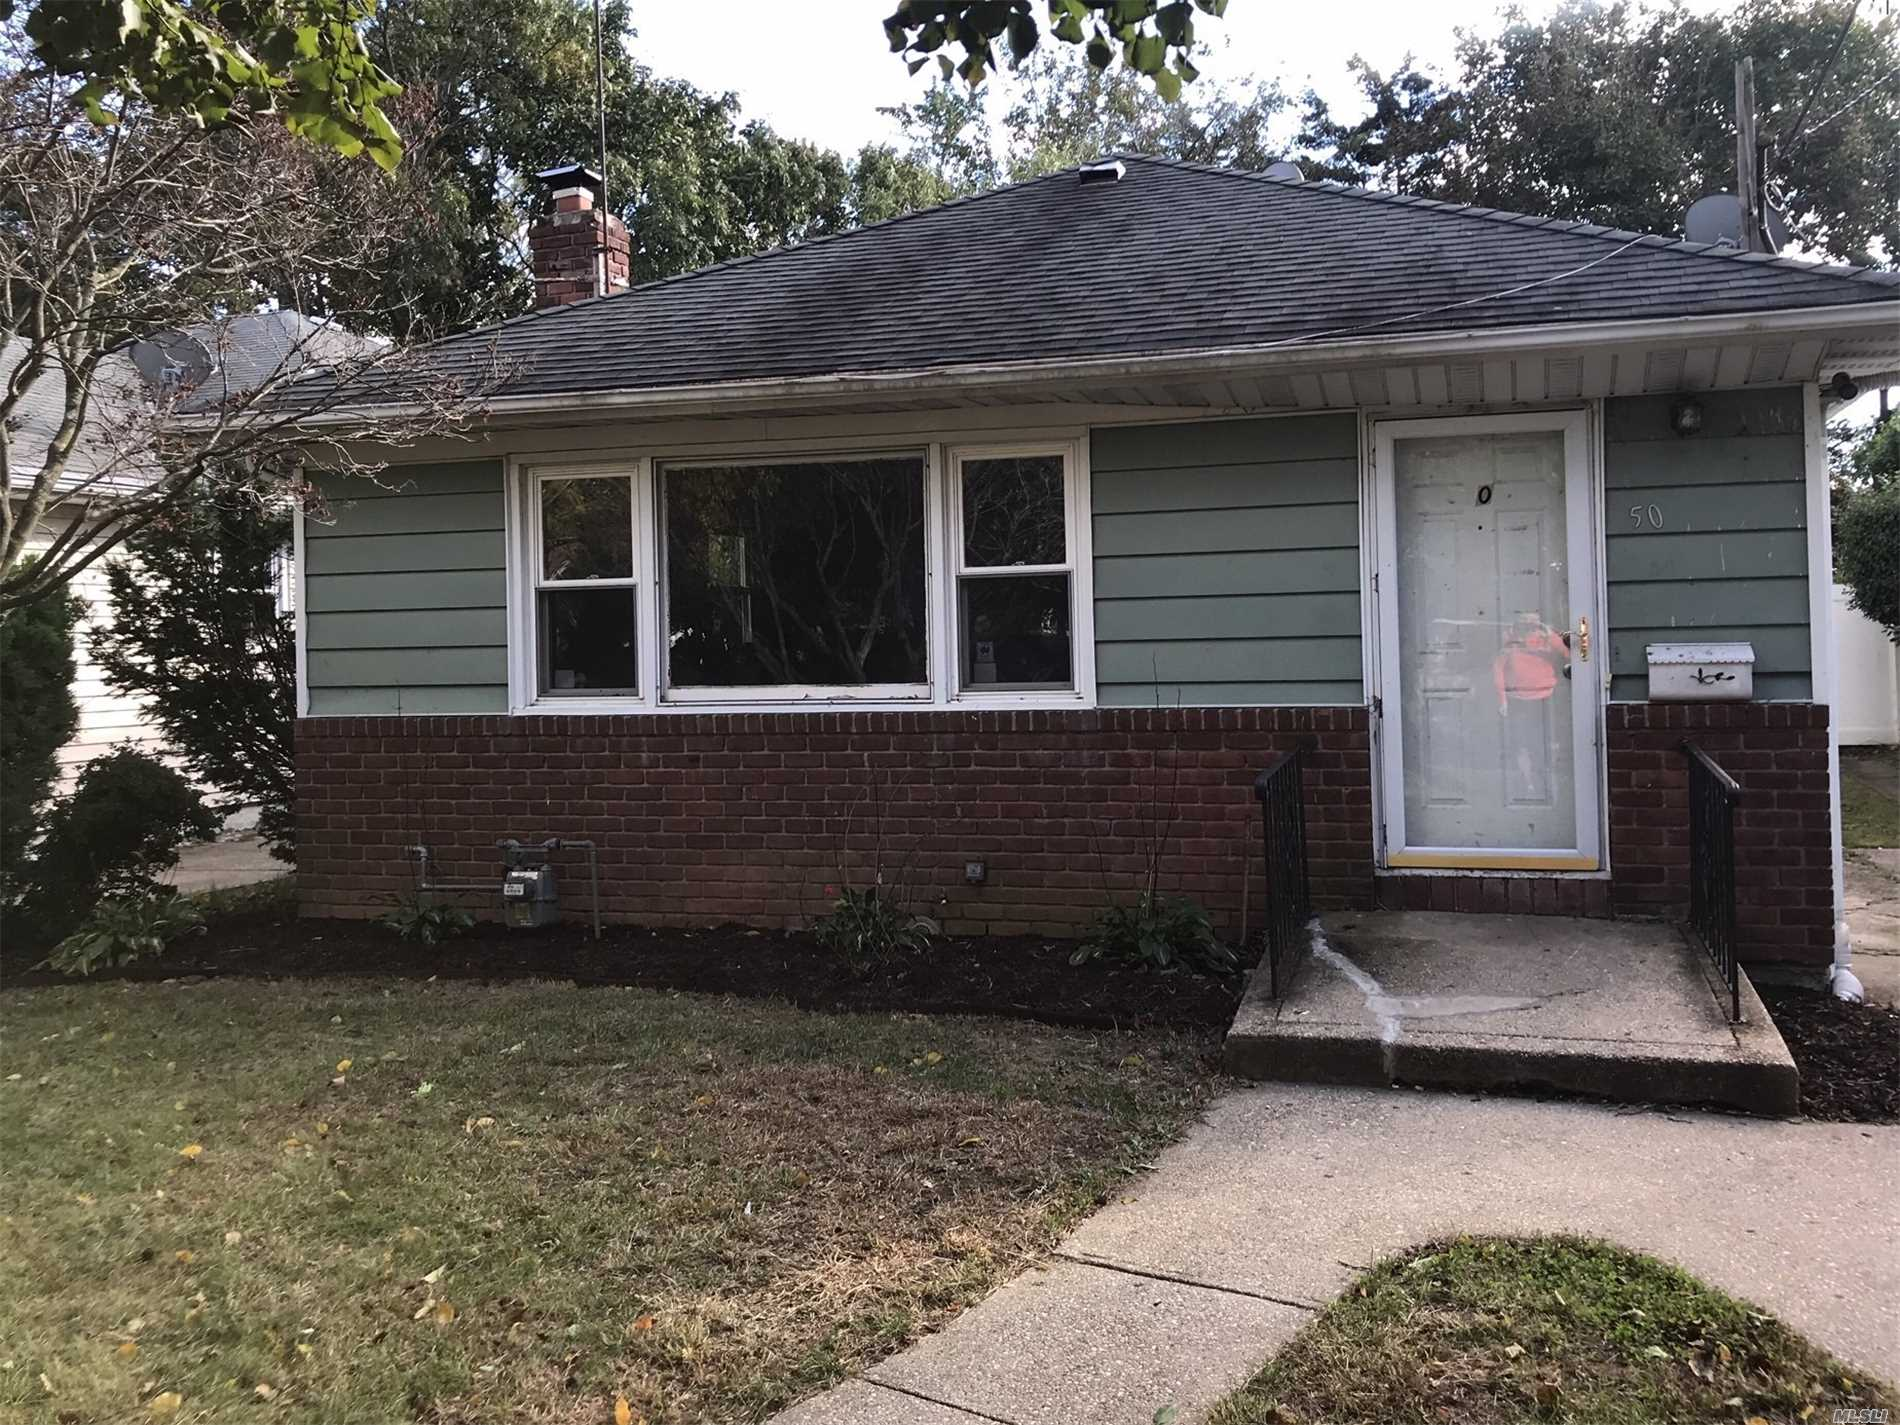 Spacious Split Ranch Style, Features Spacious Living Room, Dining Room W/Hardwood Floors,  Kitchen, 3 Bedrooms, 1.5 Bathrooms, Family Room With Ose. Close To Area Shopping, Transportation, Parkways. Great Opportunity.